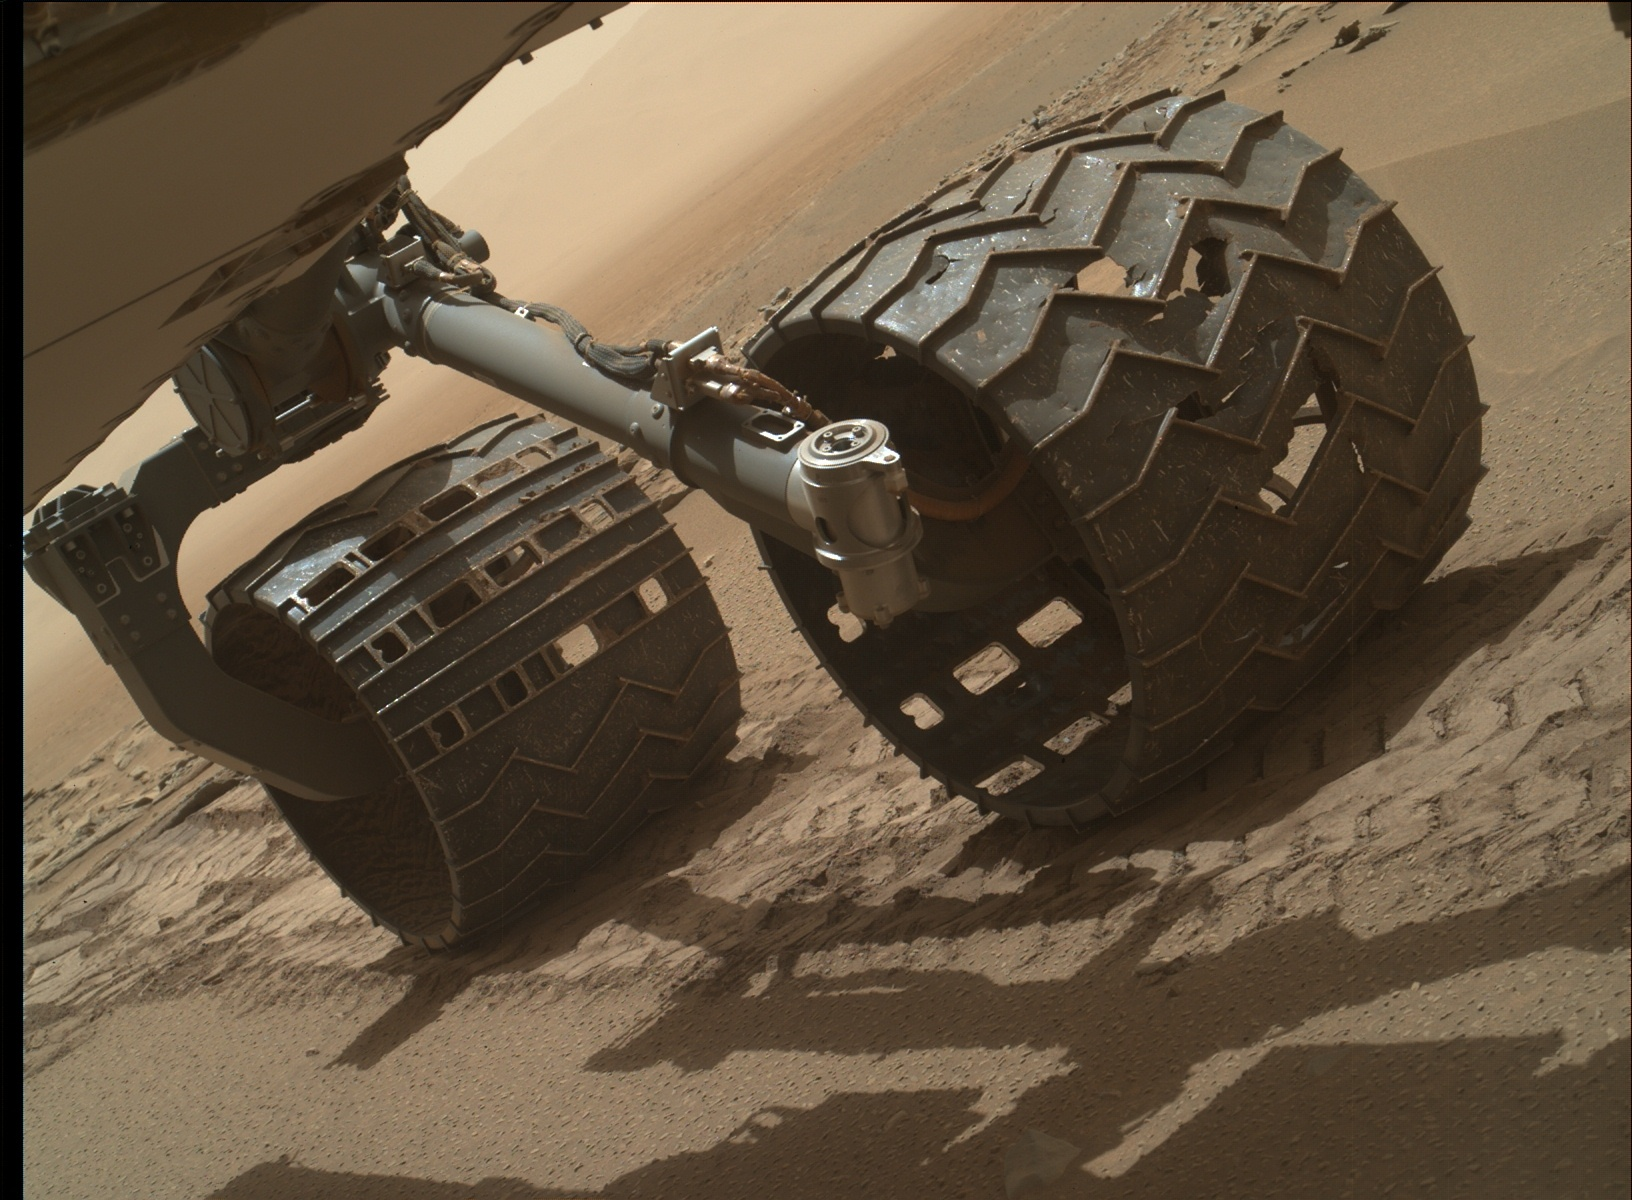 Mars Rover: Wheel Watch 2015